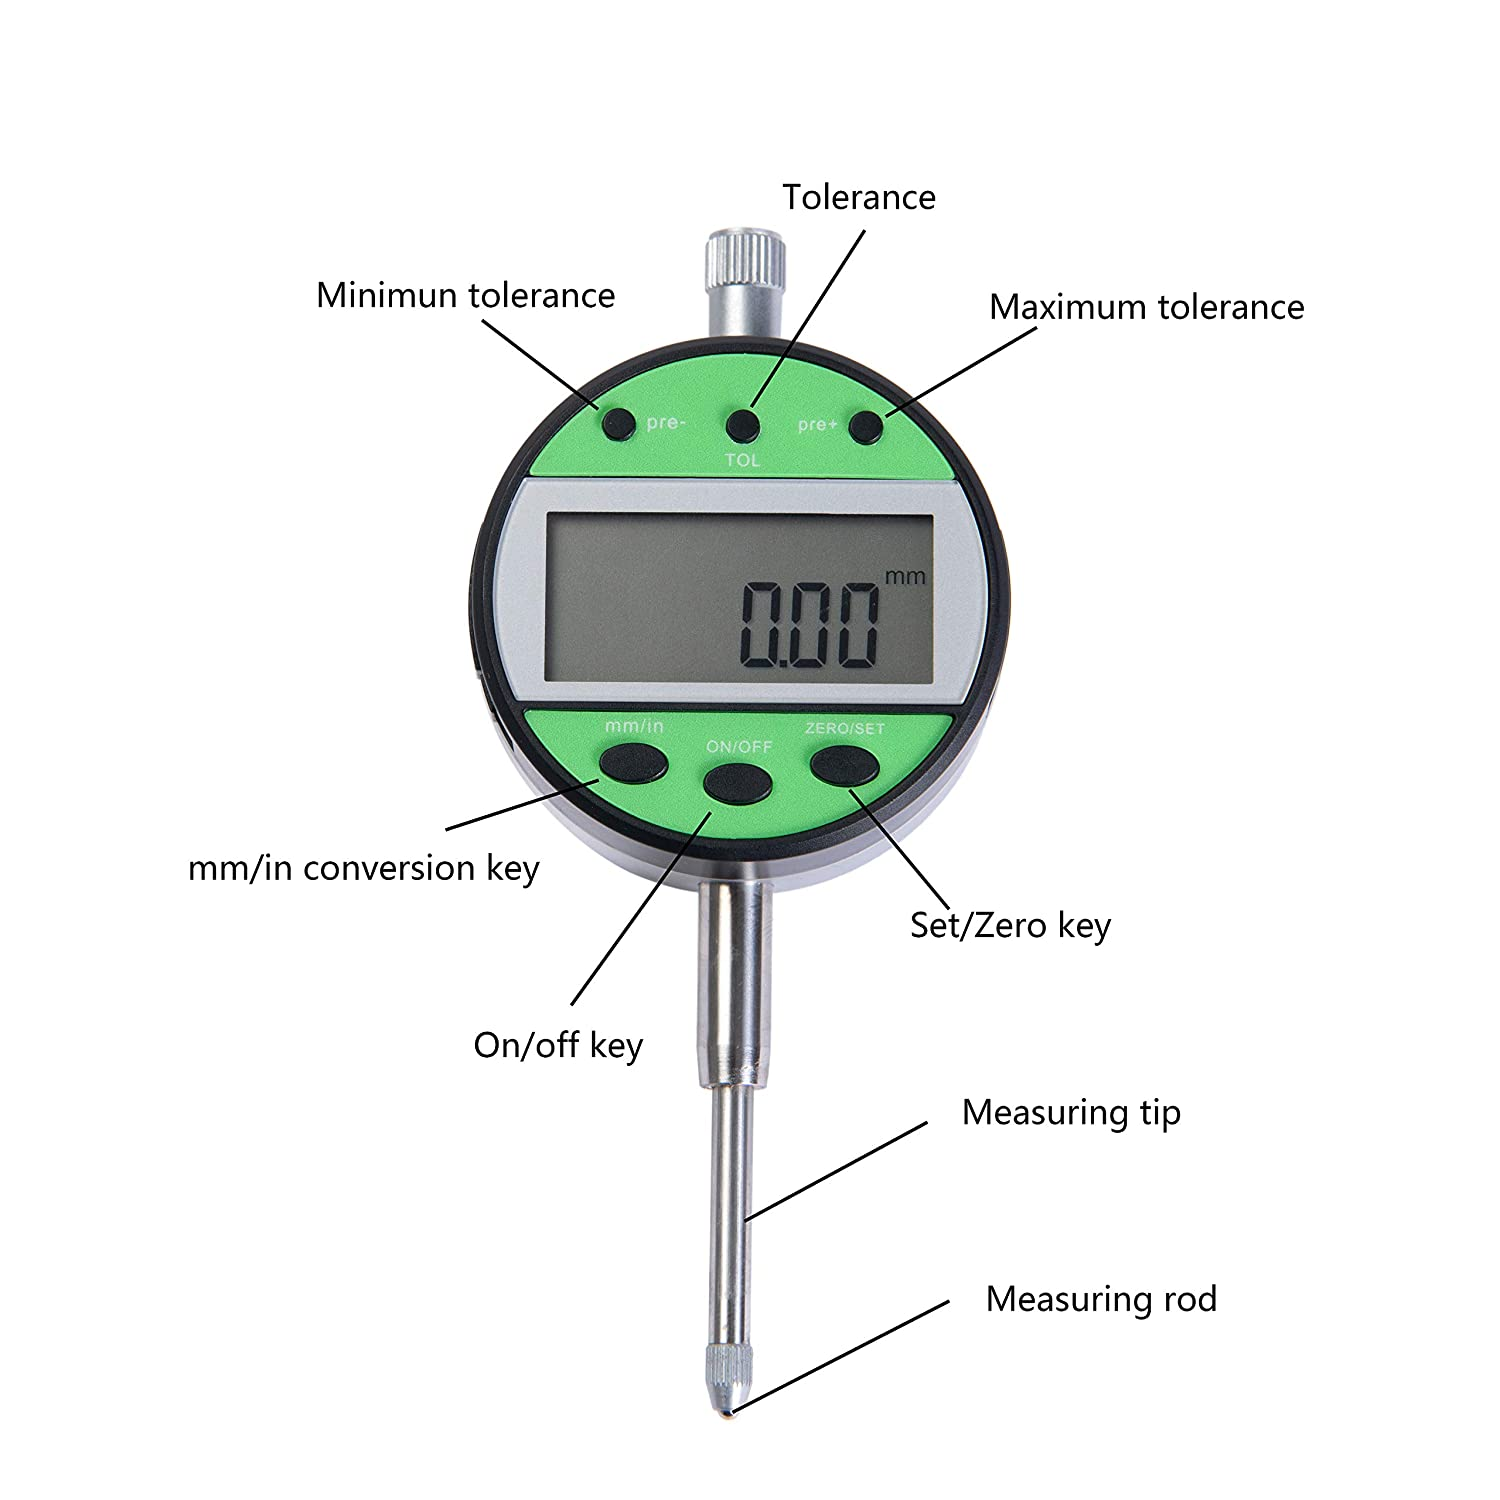 0.03mm Electronic Super Precision Inch//Metric Conversion 0-1 Inch//25.4 mm with LCD Beslands Digital Dial Indicator 1//25.4mm Probe Test High Resolution 0.0005//0.01mm Accuracy